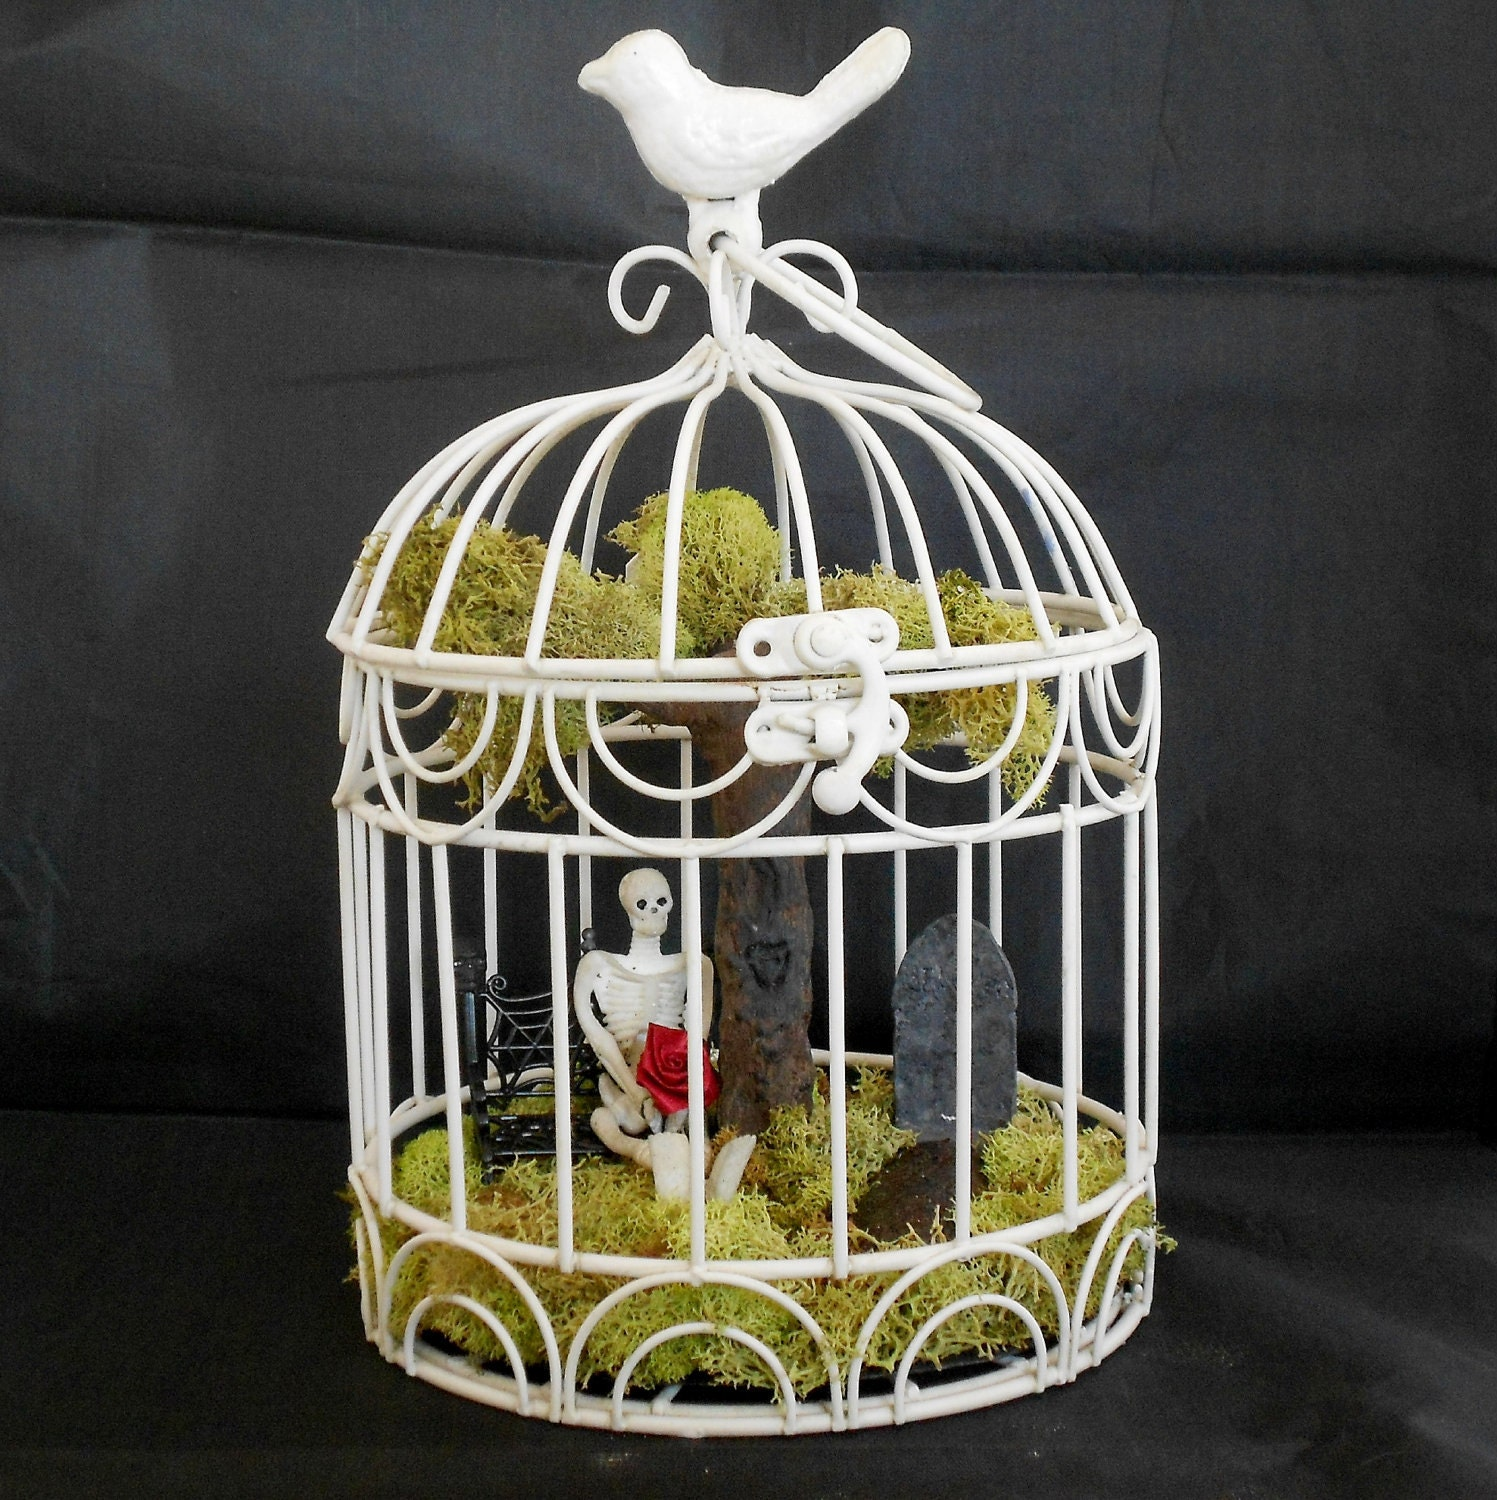 Gothic Home Decor Victorian Gothic Decorative Bird Cage